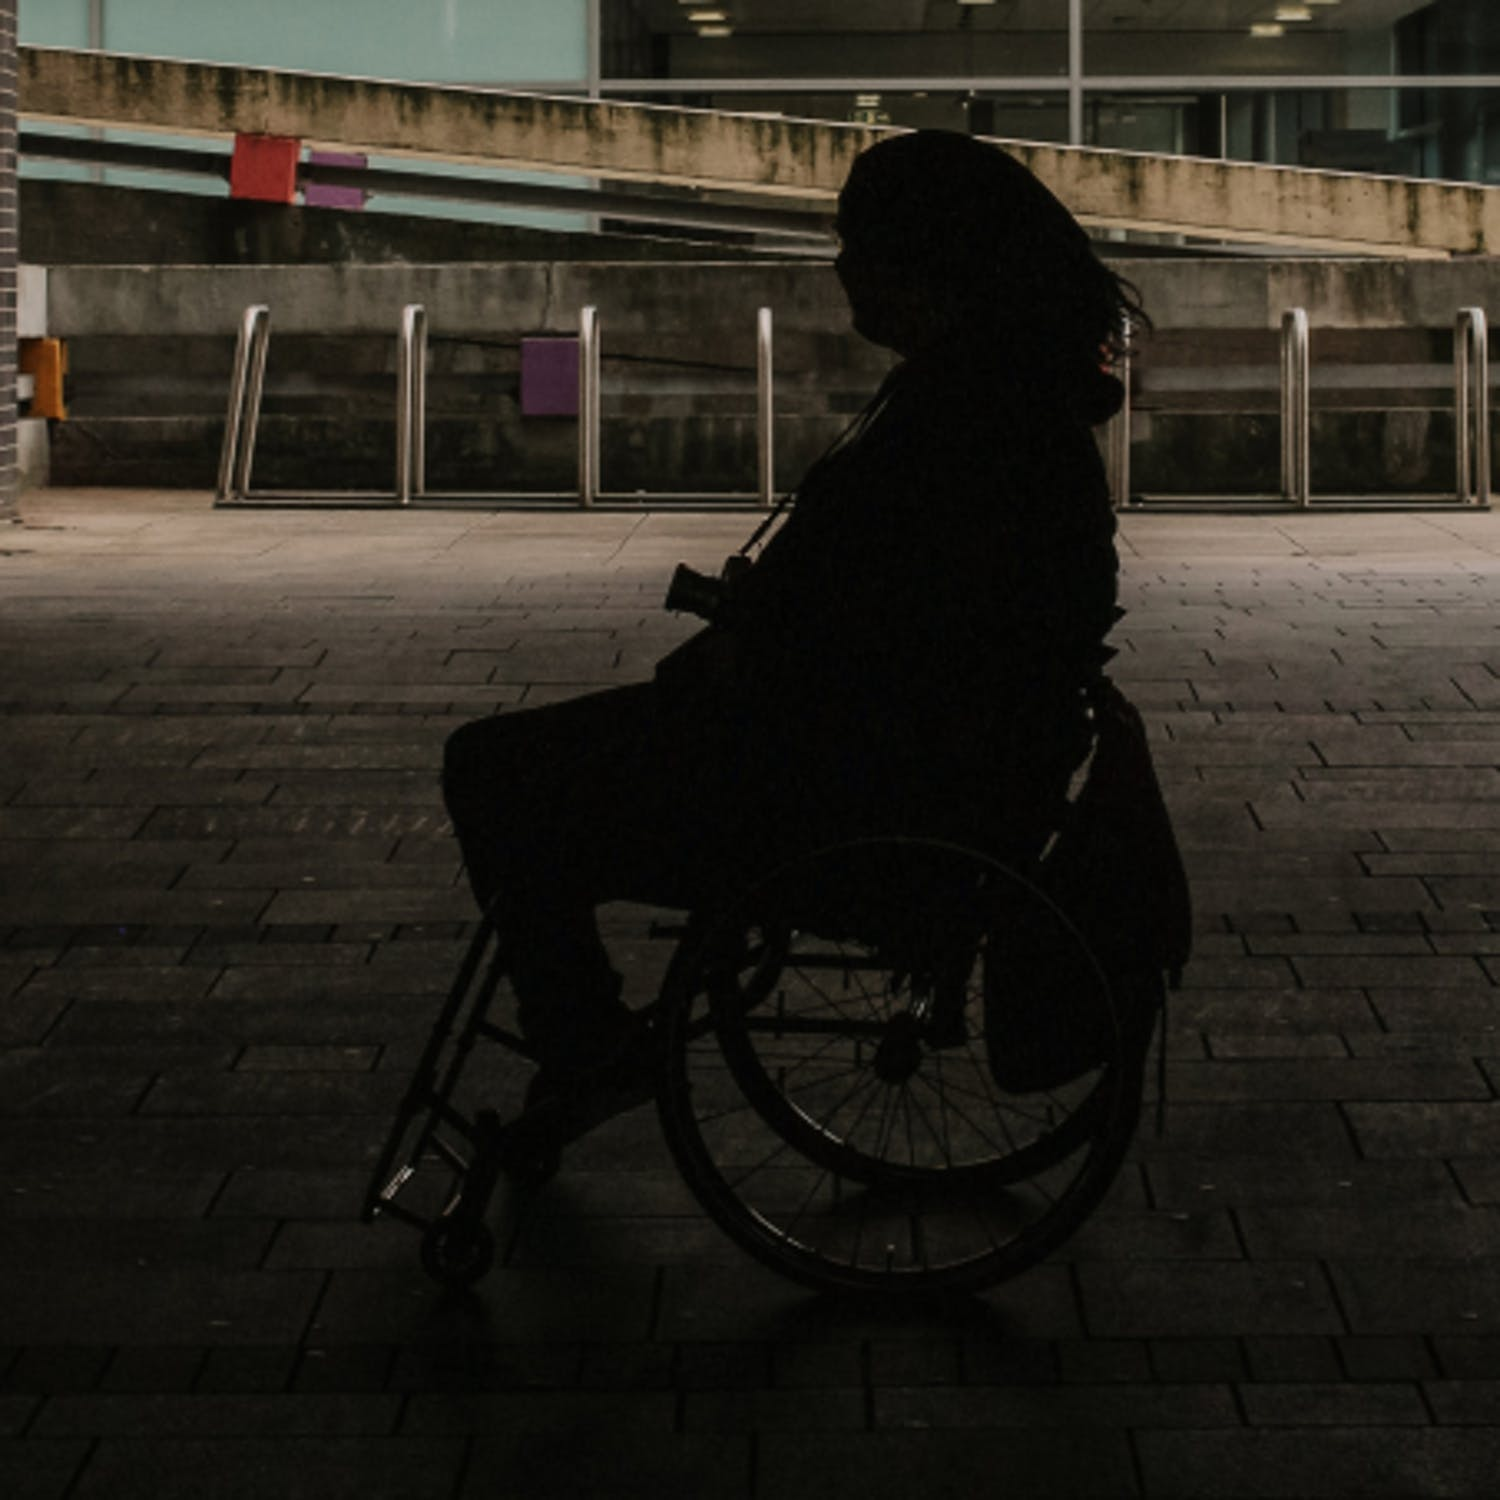 Silhouette of woman in wheelchair outside.